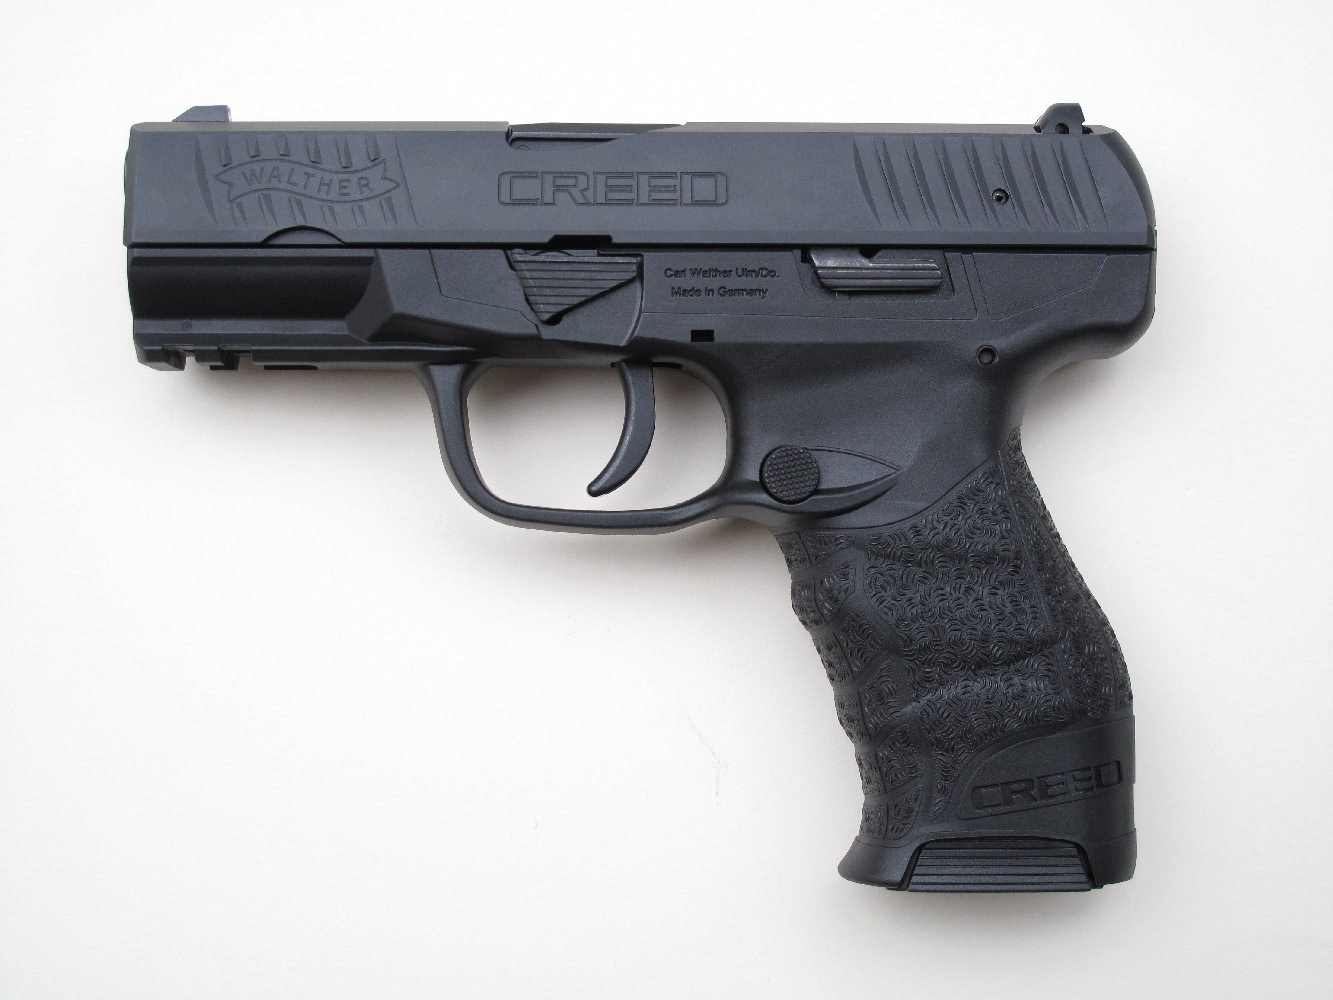 Pistolet semi-automatique Walther « Creed » de calibre 9 mm Parabellum